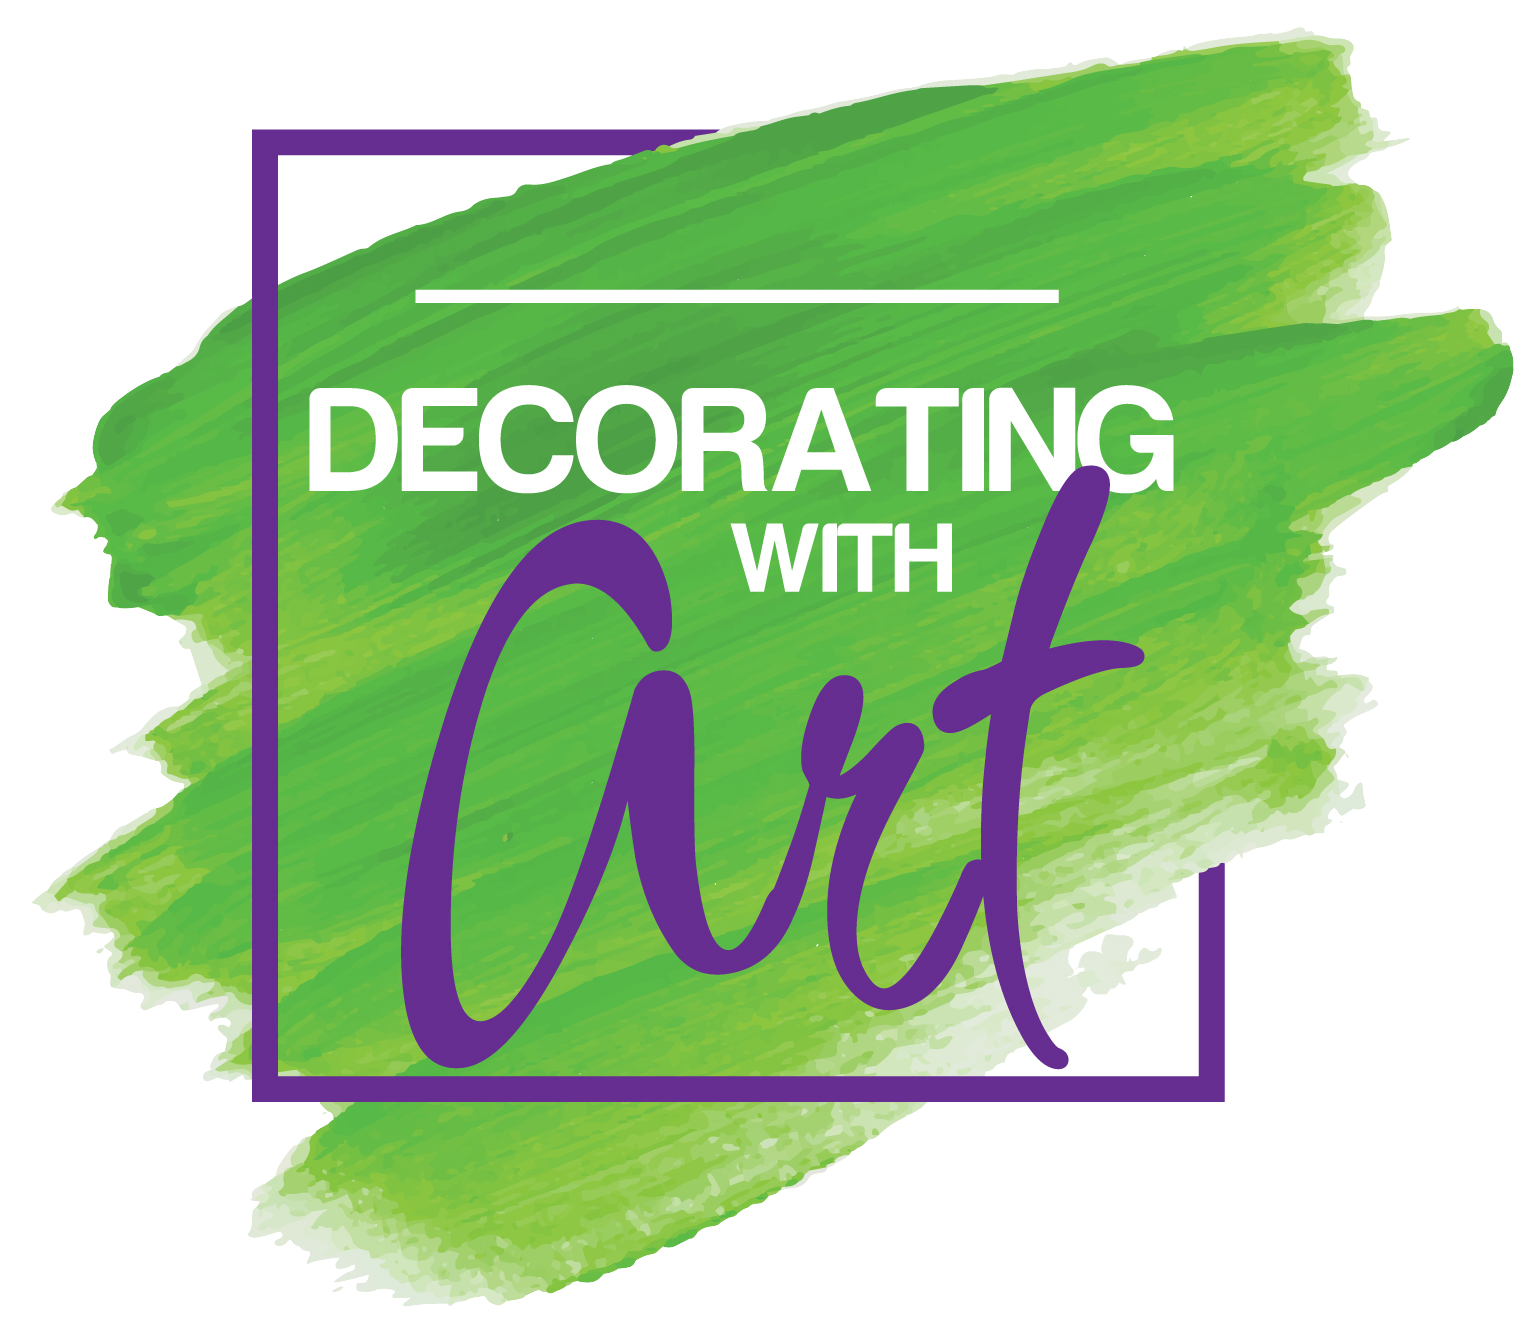 Decorating with art logo